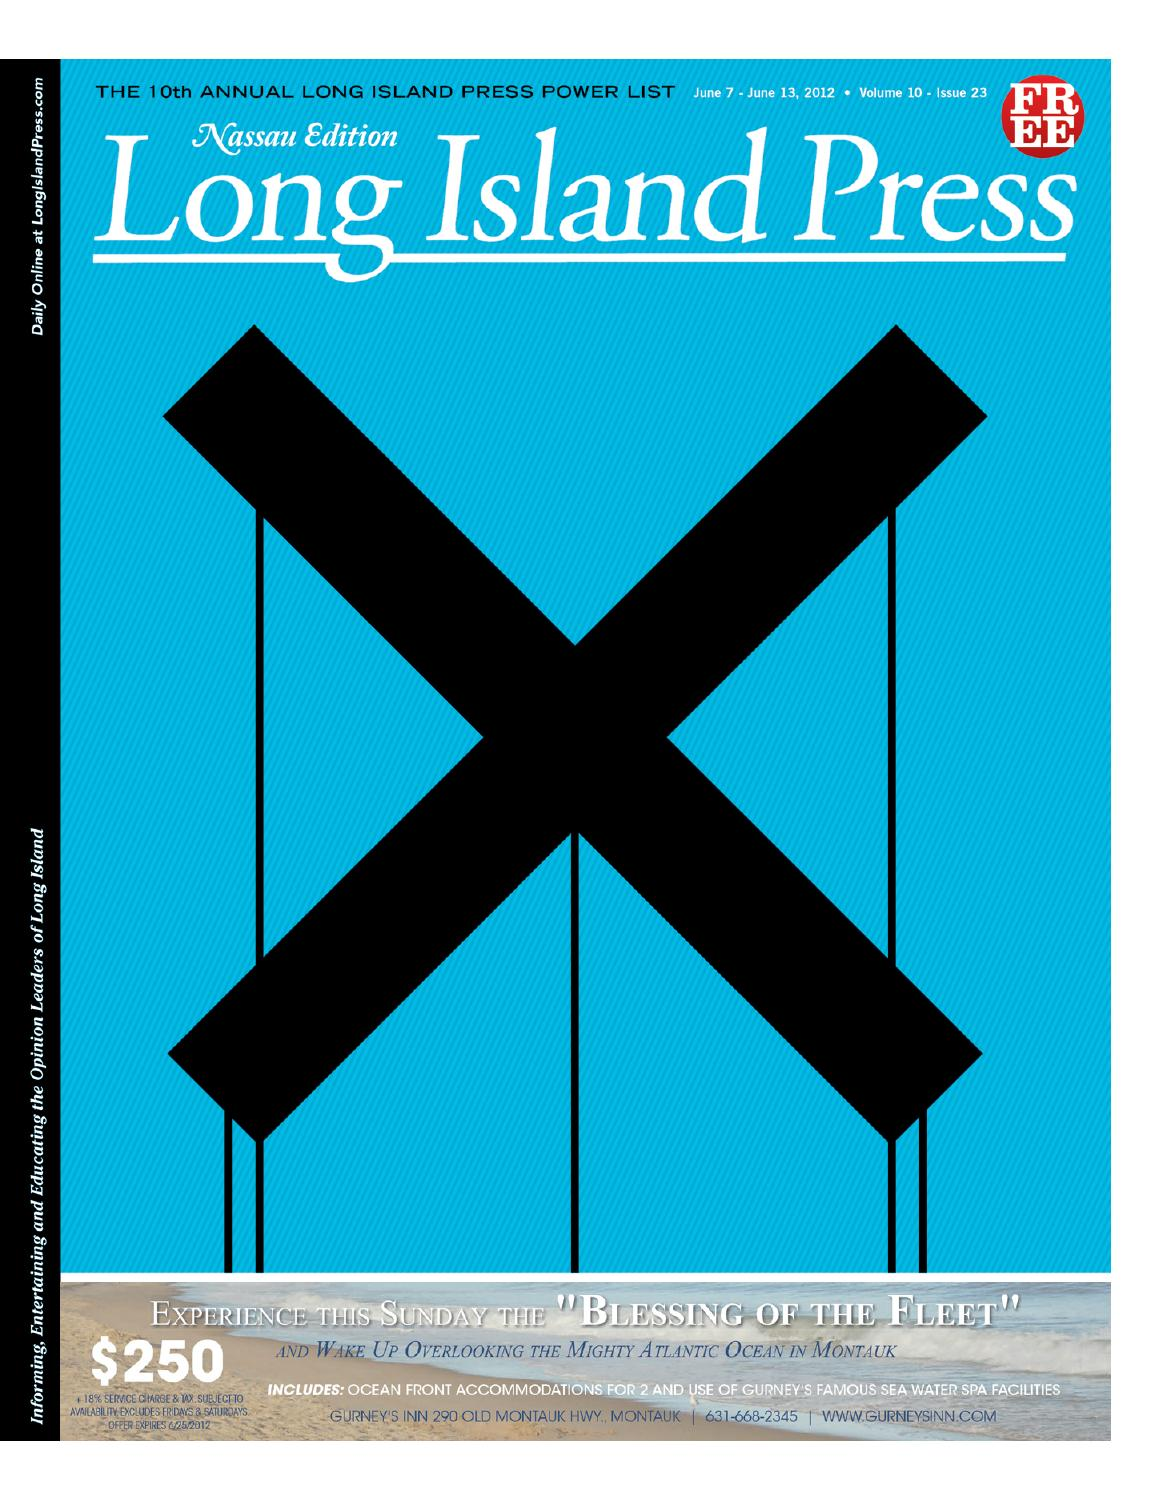 Volume 10, Issue 23 - 10th Annual Power List by Long Island